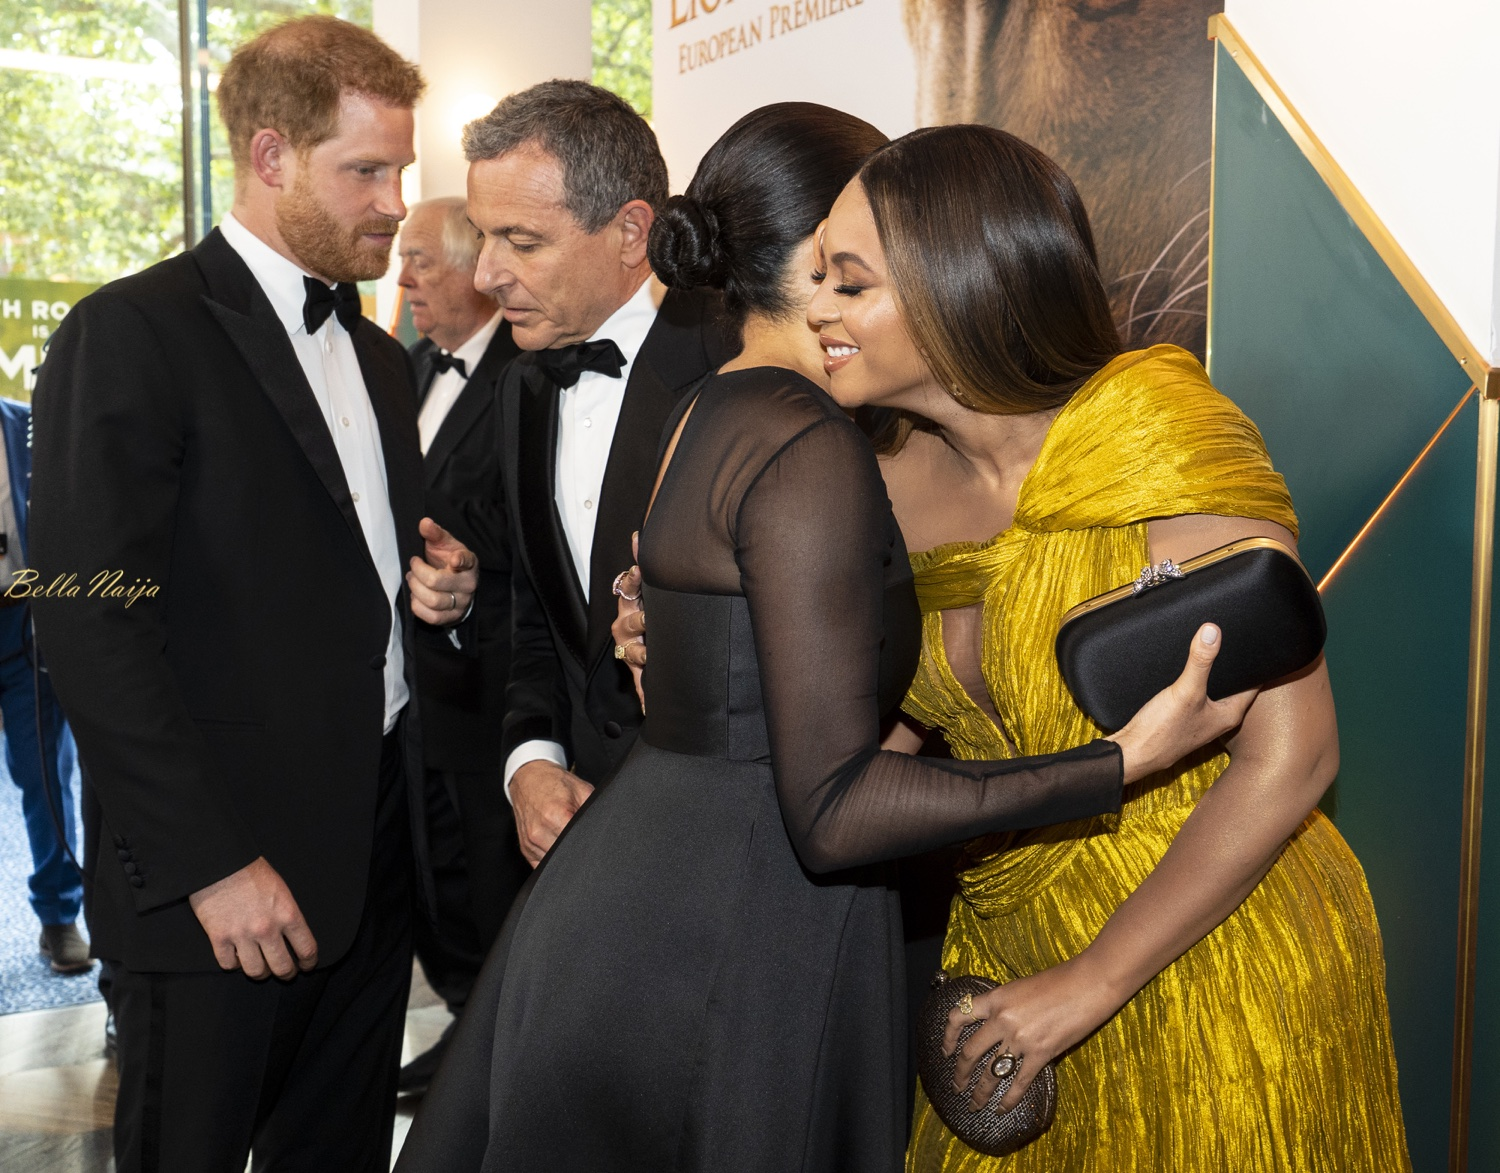 Beyoncé & Meghan Markle Met Publicly for the First Time at 'The Lion King' Premiere